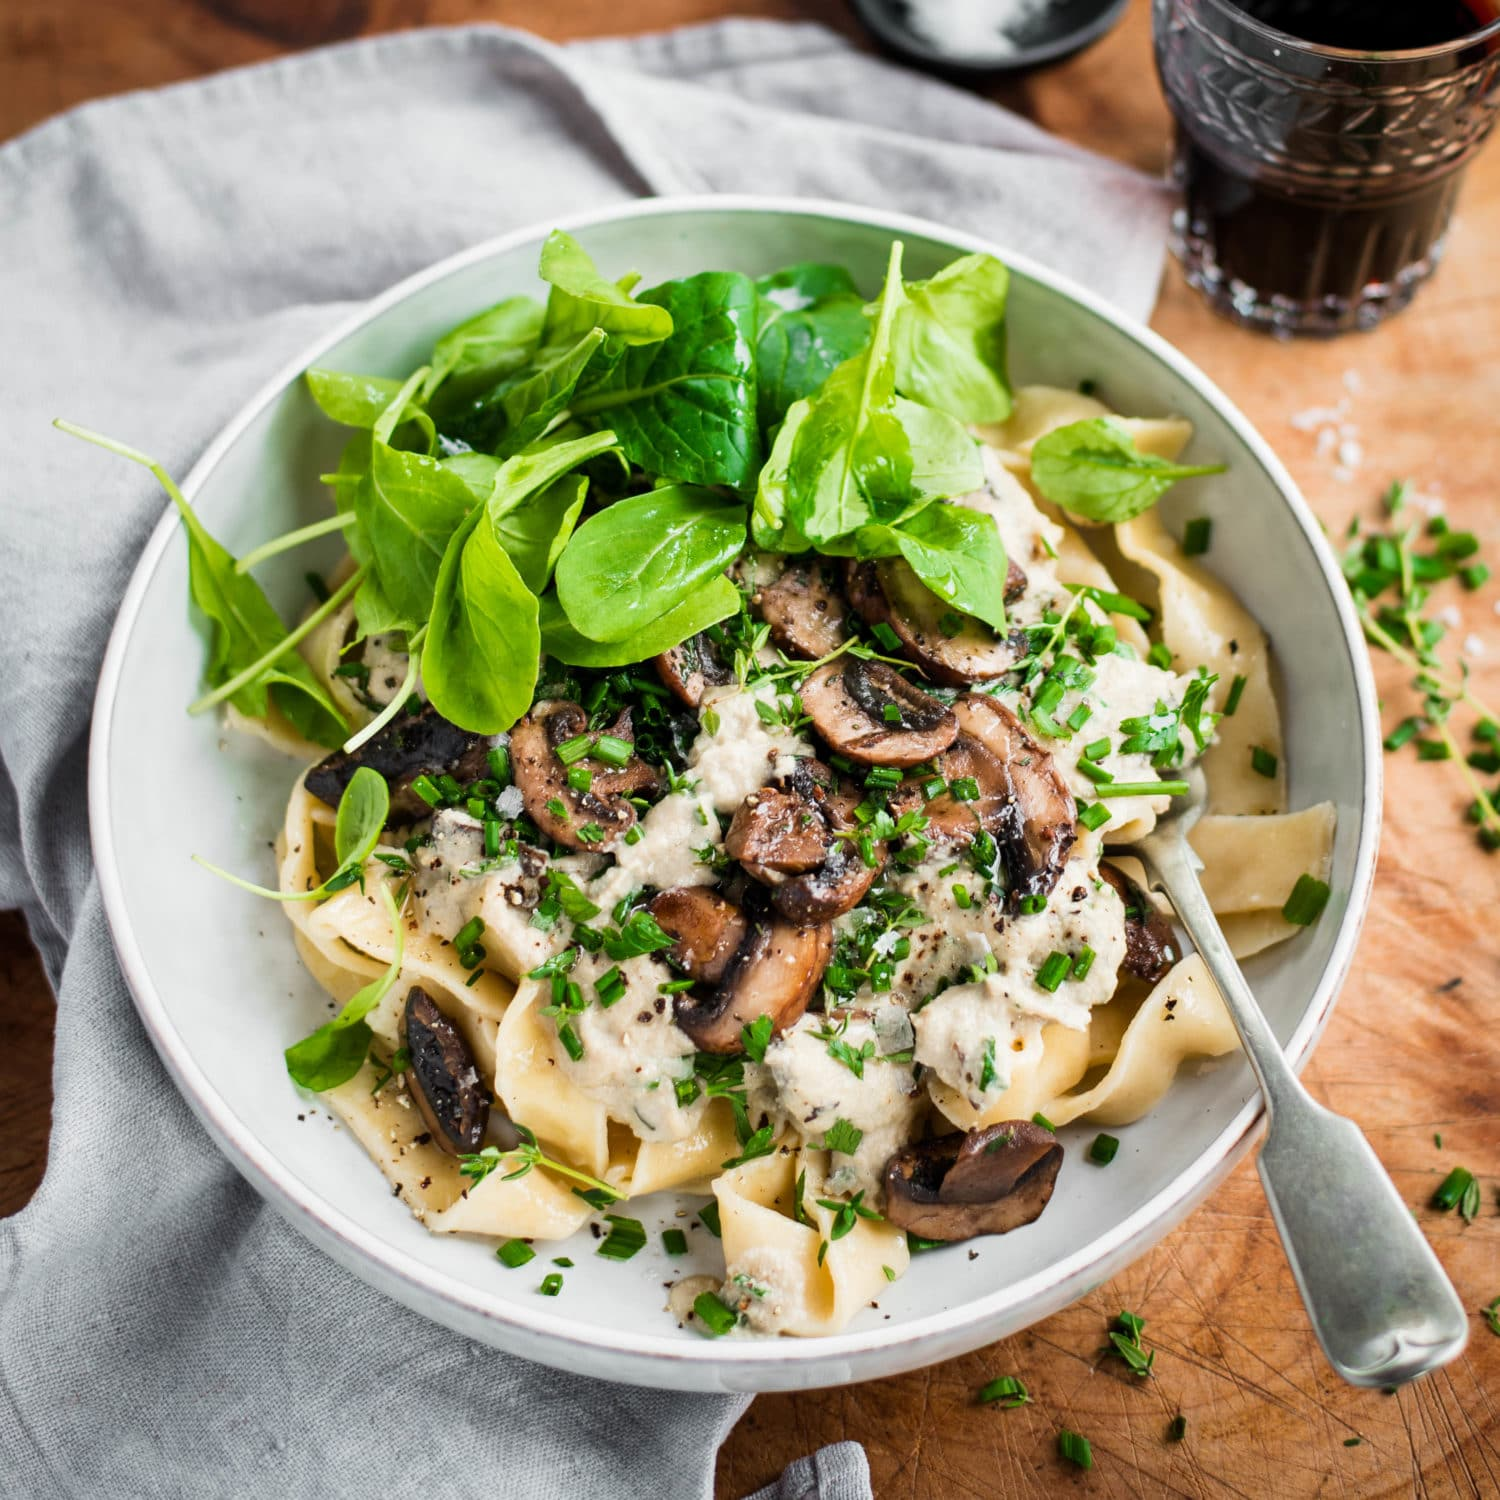 Mushroom And Herb Pasta With Vegan Cashew Cream Sauce Nadia Lim